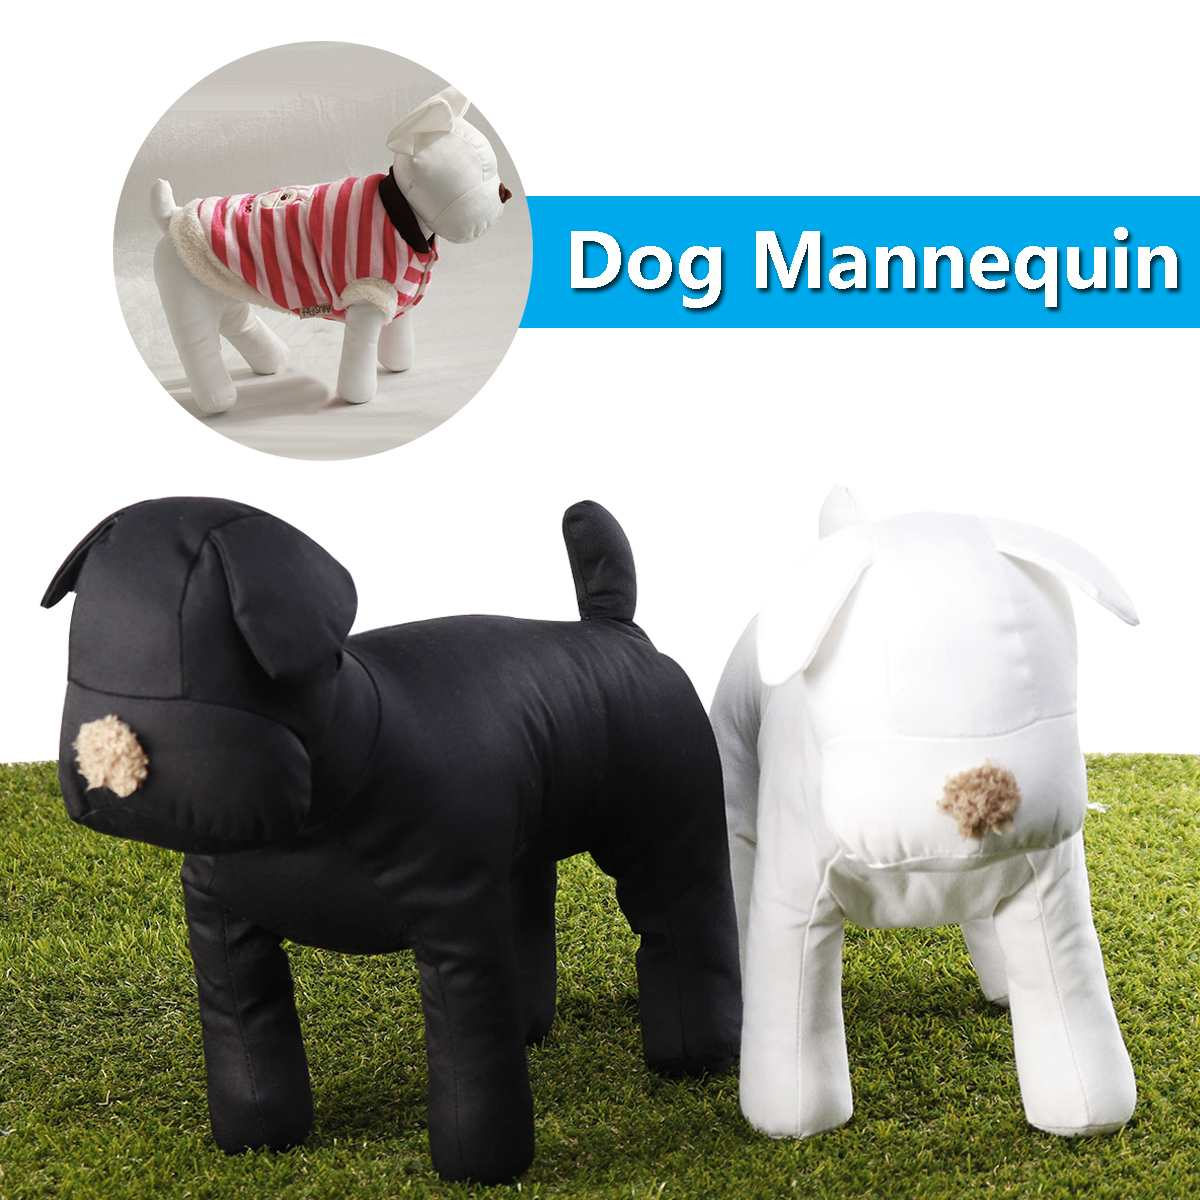 Black/White Dog Mannequin Cotton Stuffed Model Clothing Apparel Shop Collar Display Pet Toy Adjusted Leg Poses for Retail Store image